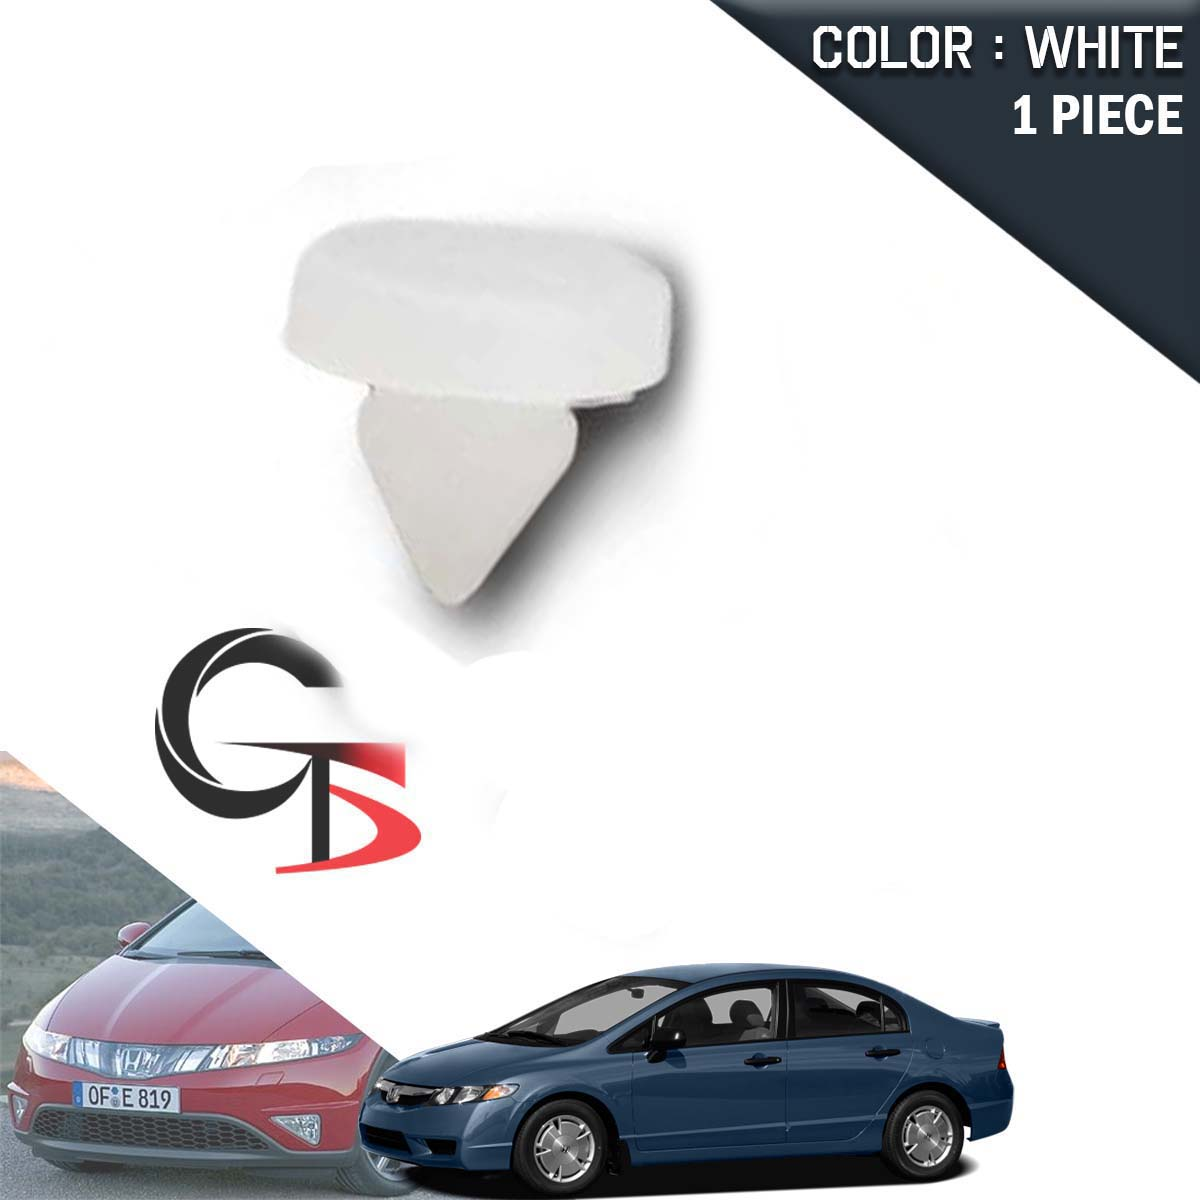 Details about Brake Light Lamp Switch Stopper White Repair Fits Honda Civic  Fd 2006 07 - 2012